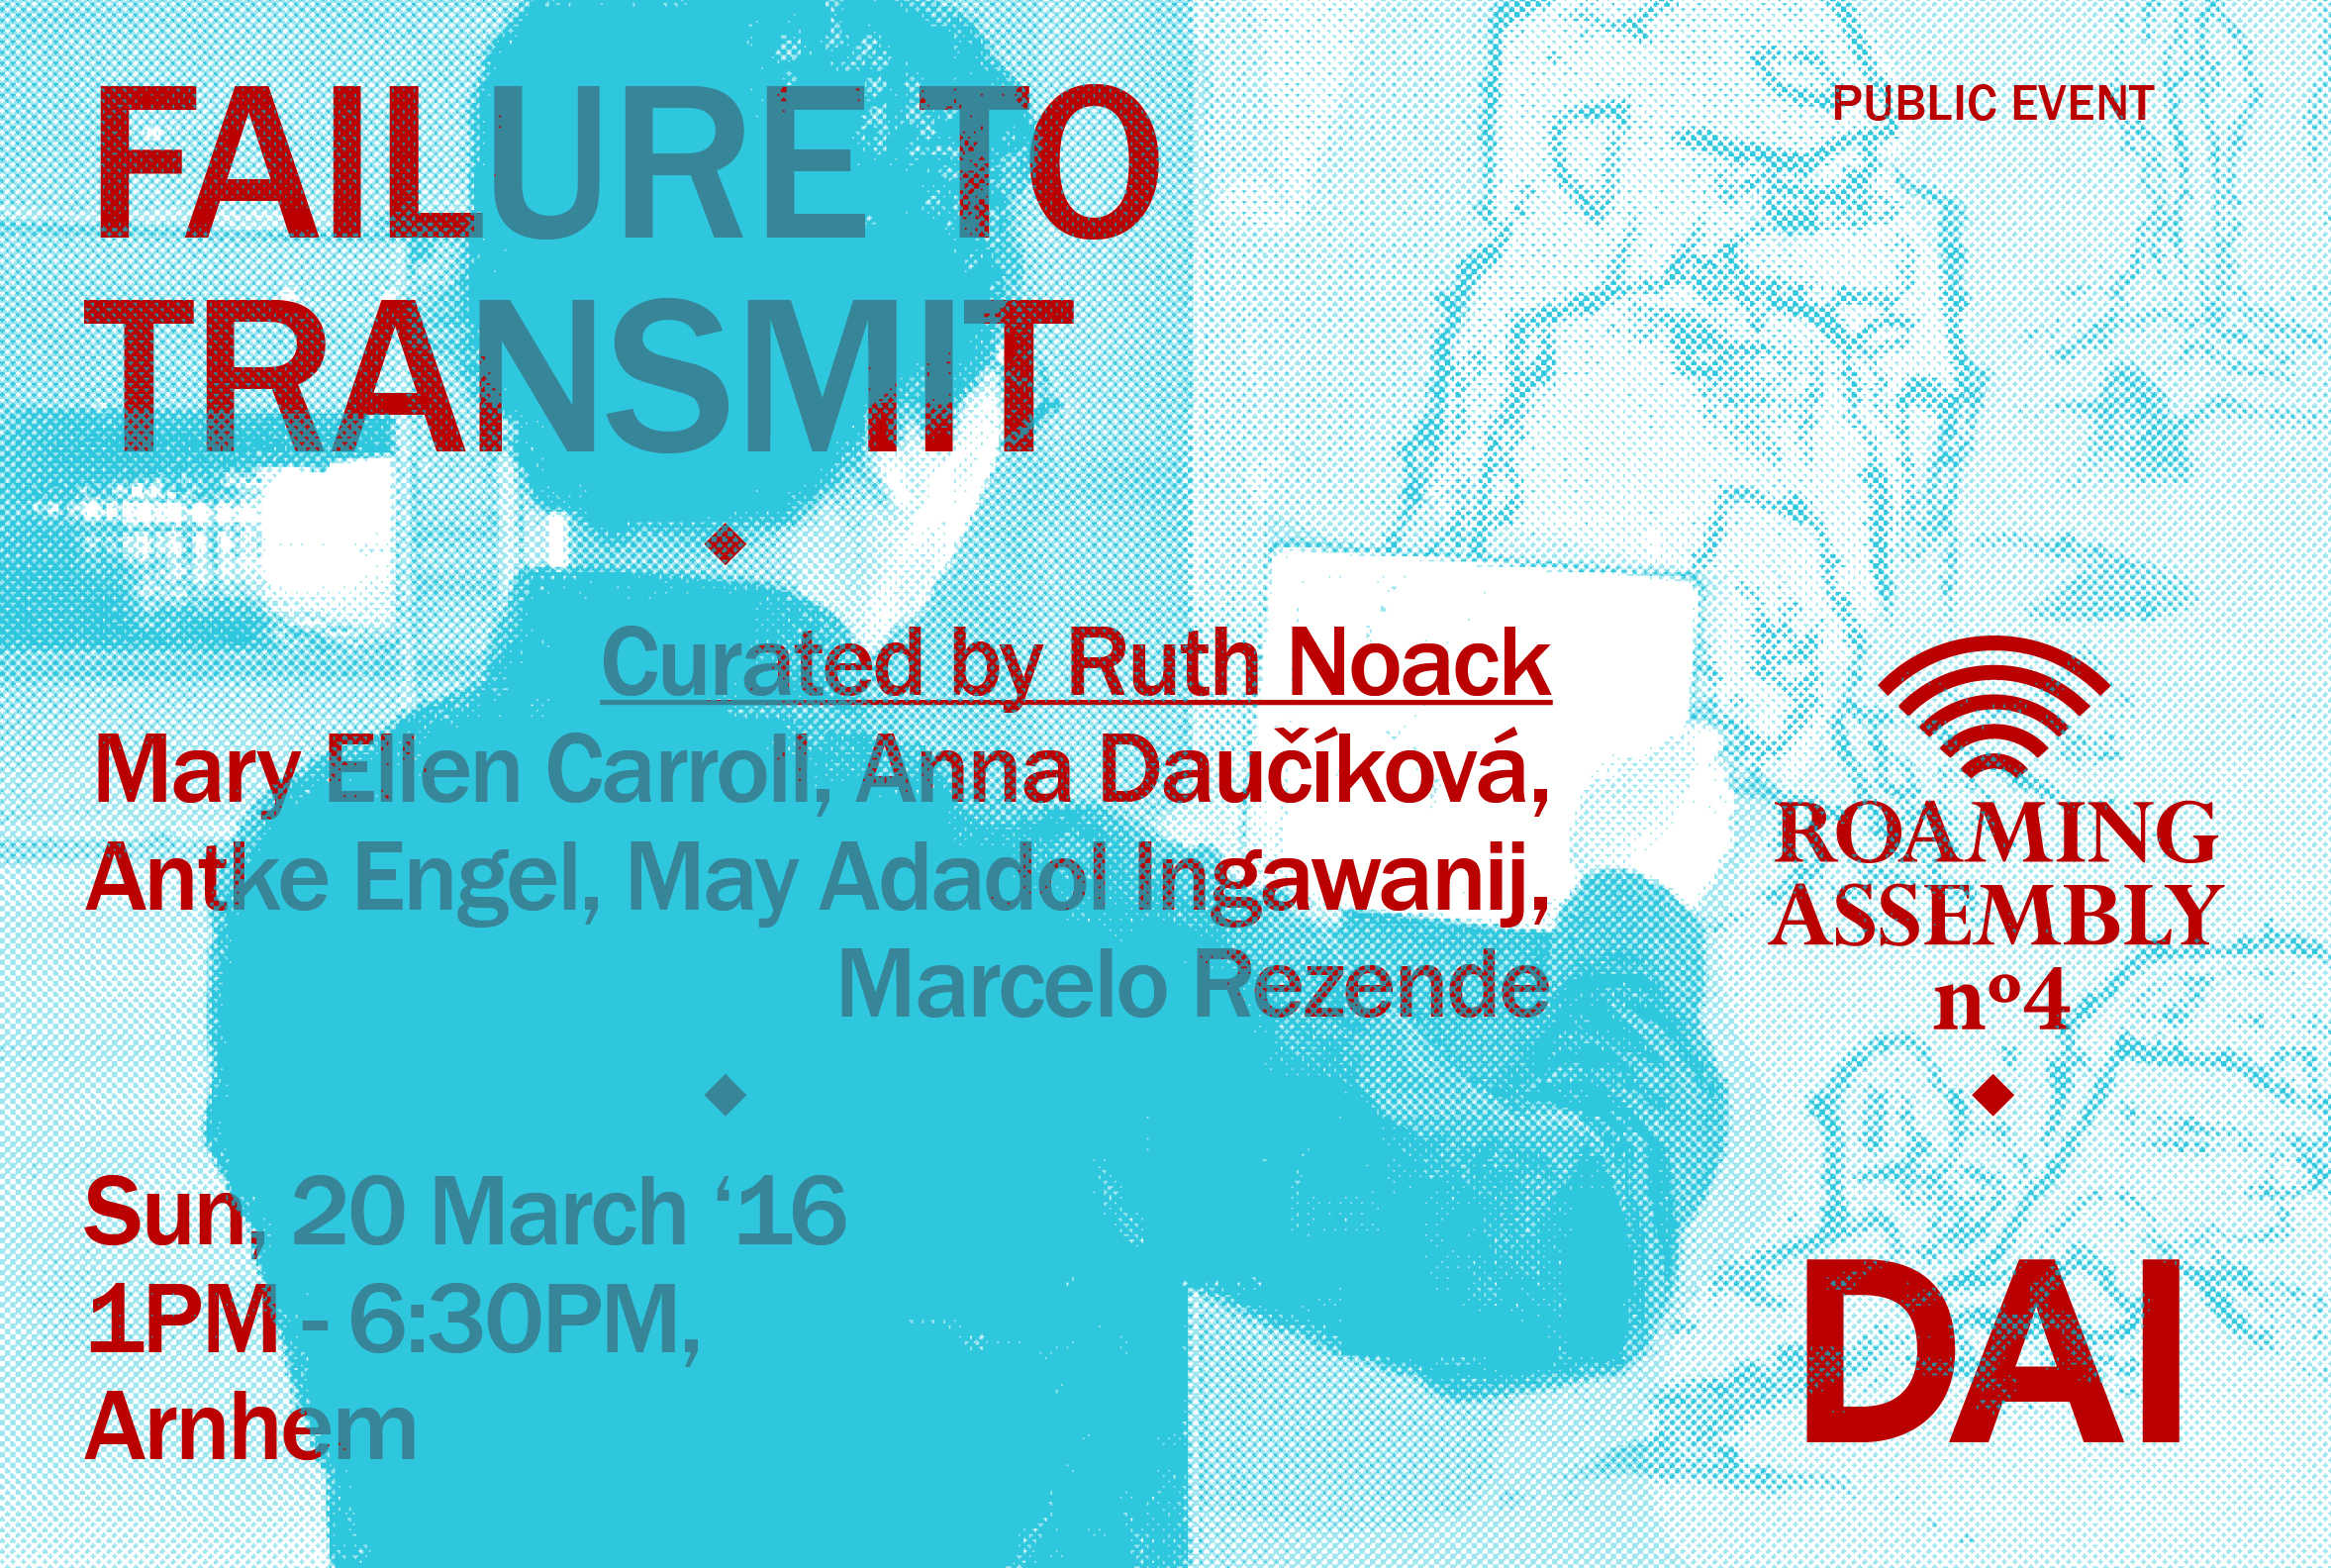 FAILURE TO TRANSMIT ~ curated by Ruth Noack